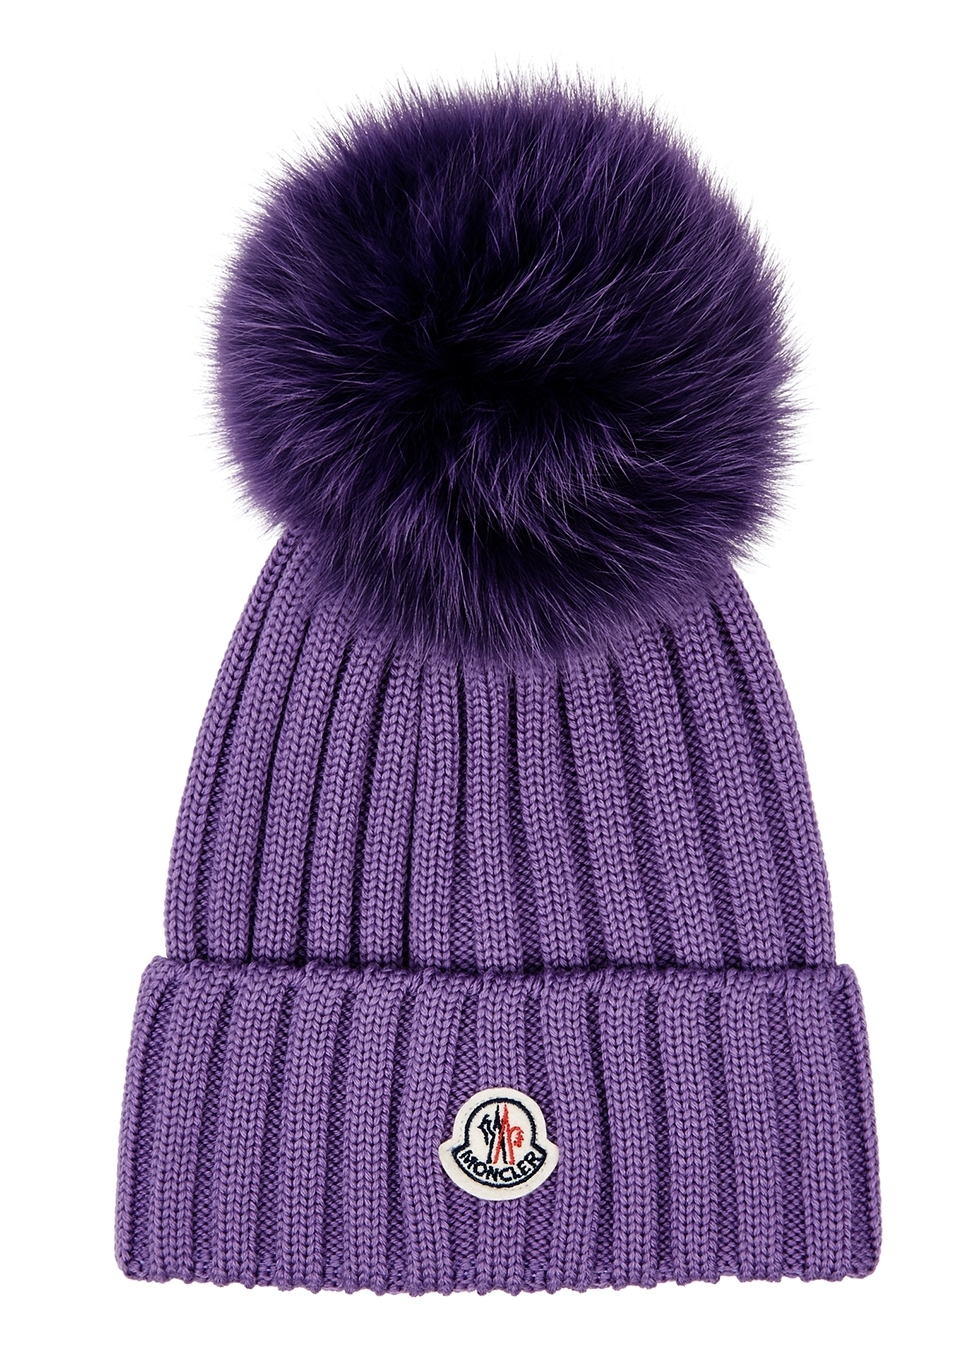 09631732cc2 Designer Beanies - Women s Luxury Hats - Harvey Nichols